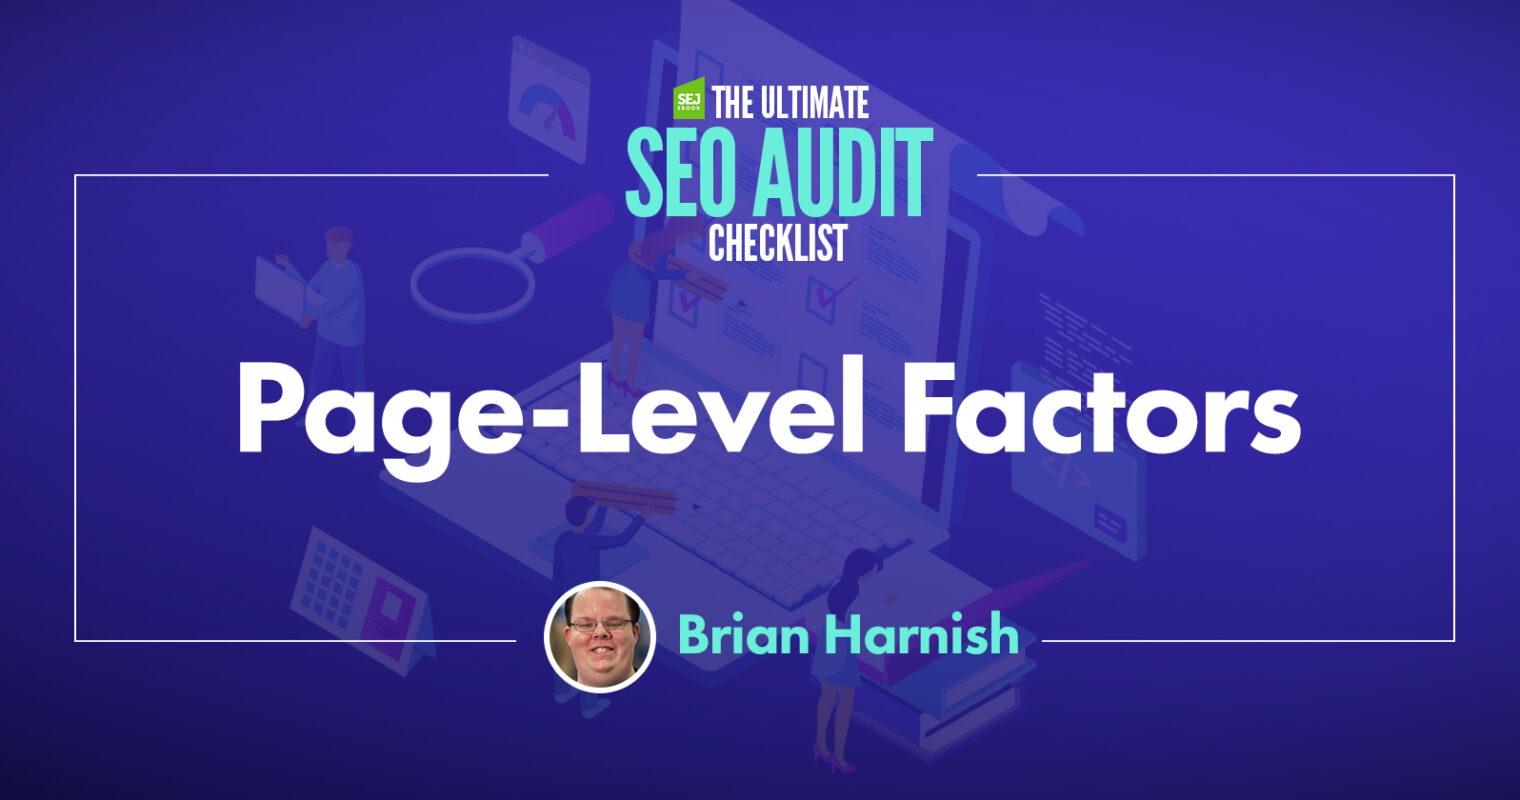 9 Page-Level Factors to Assess as Part of Your SEO Audit